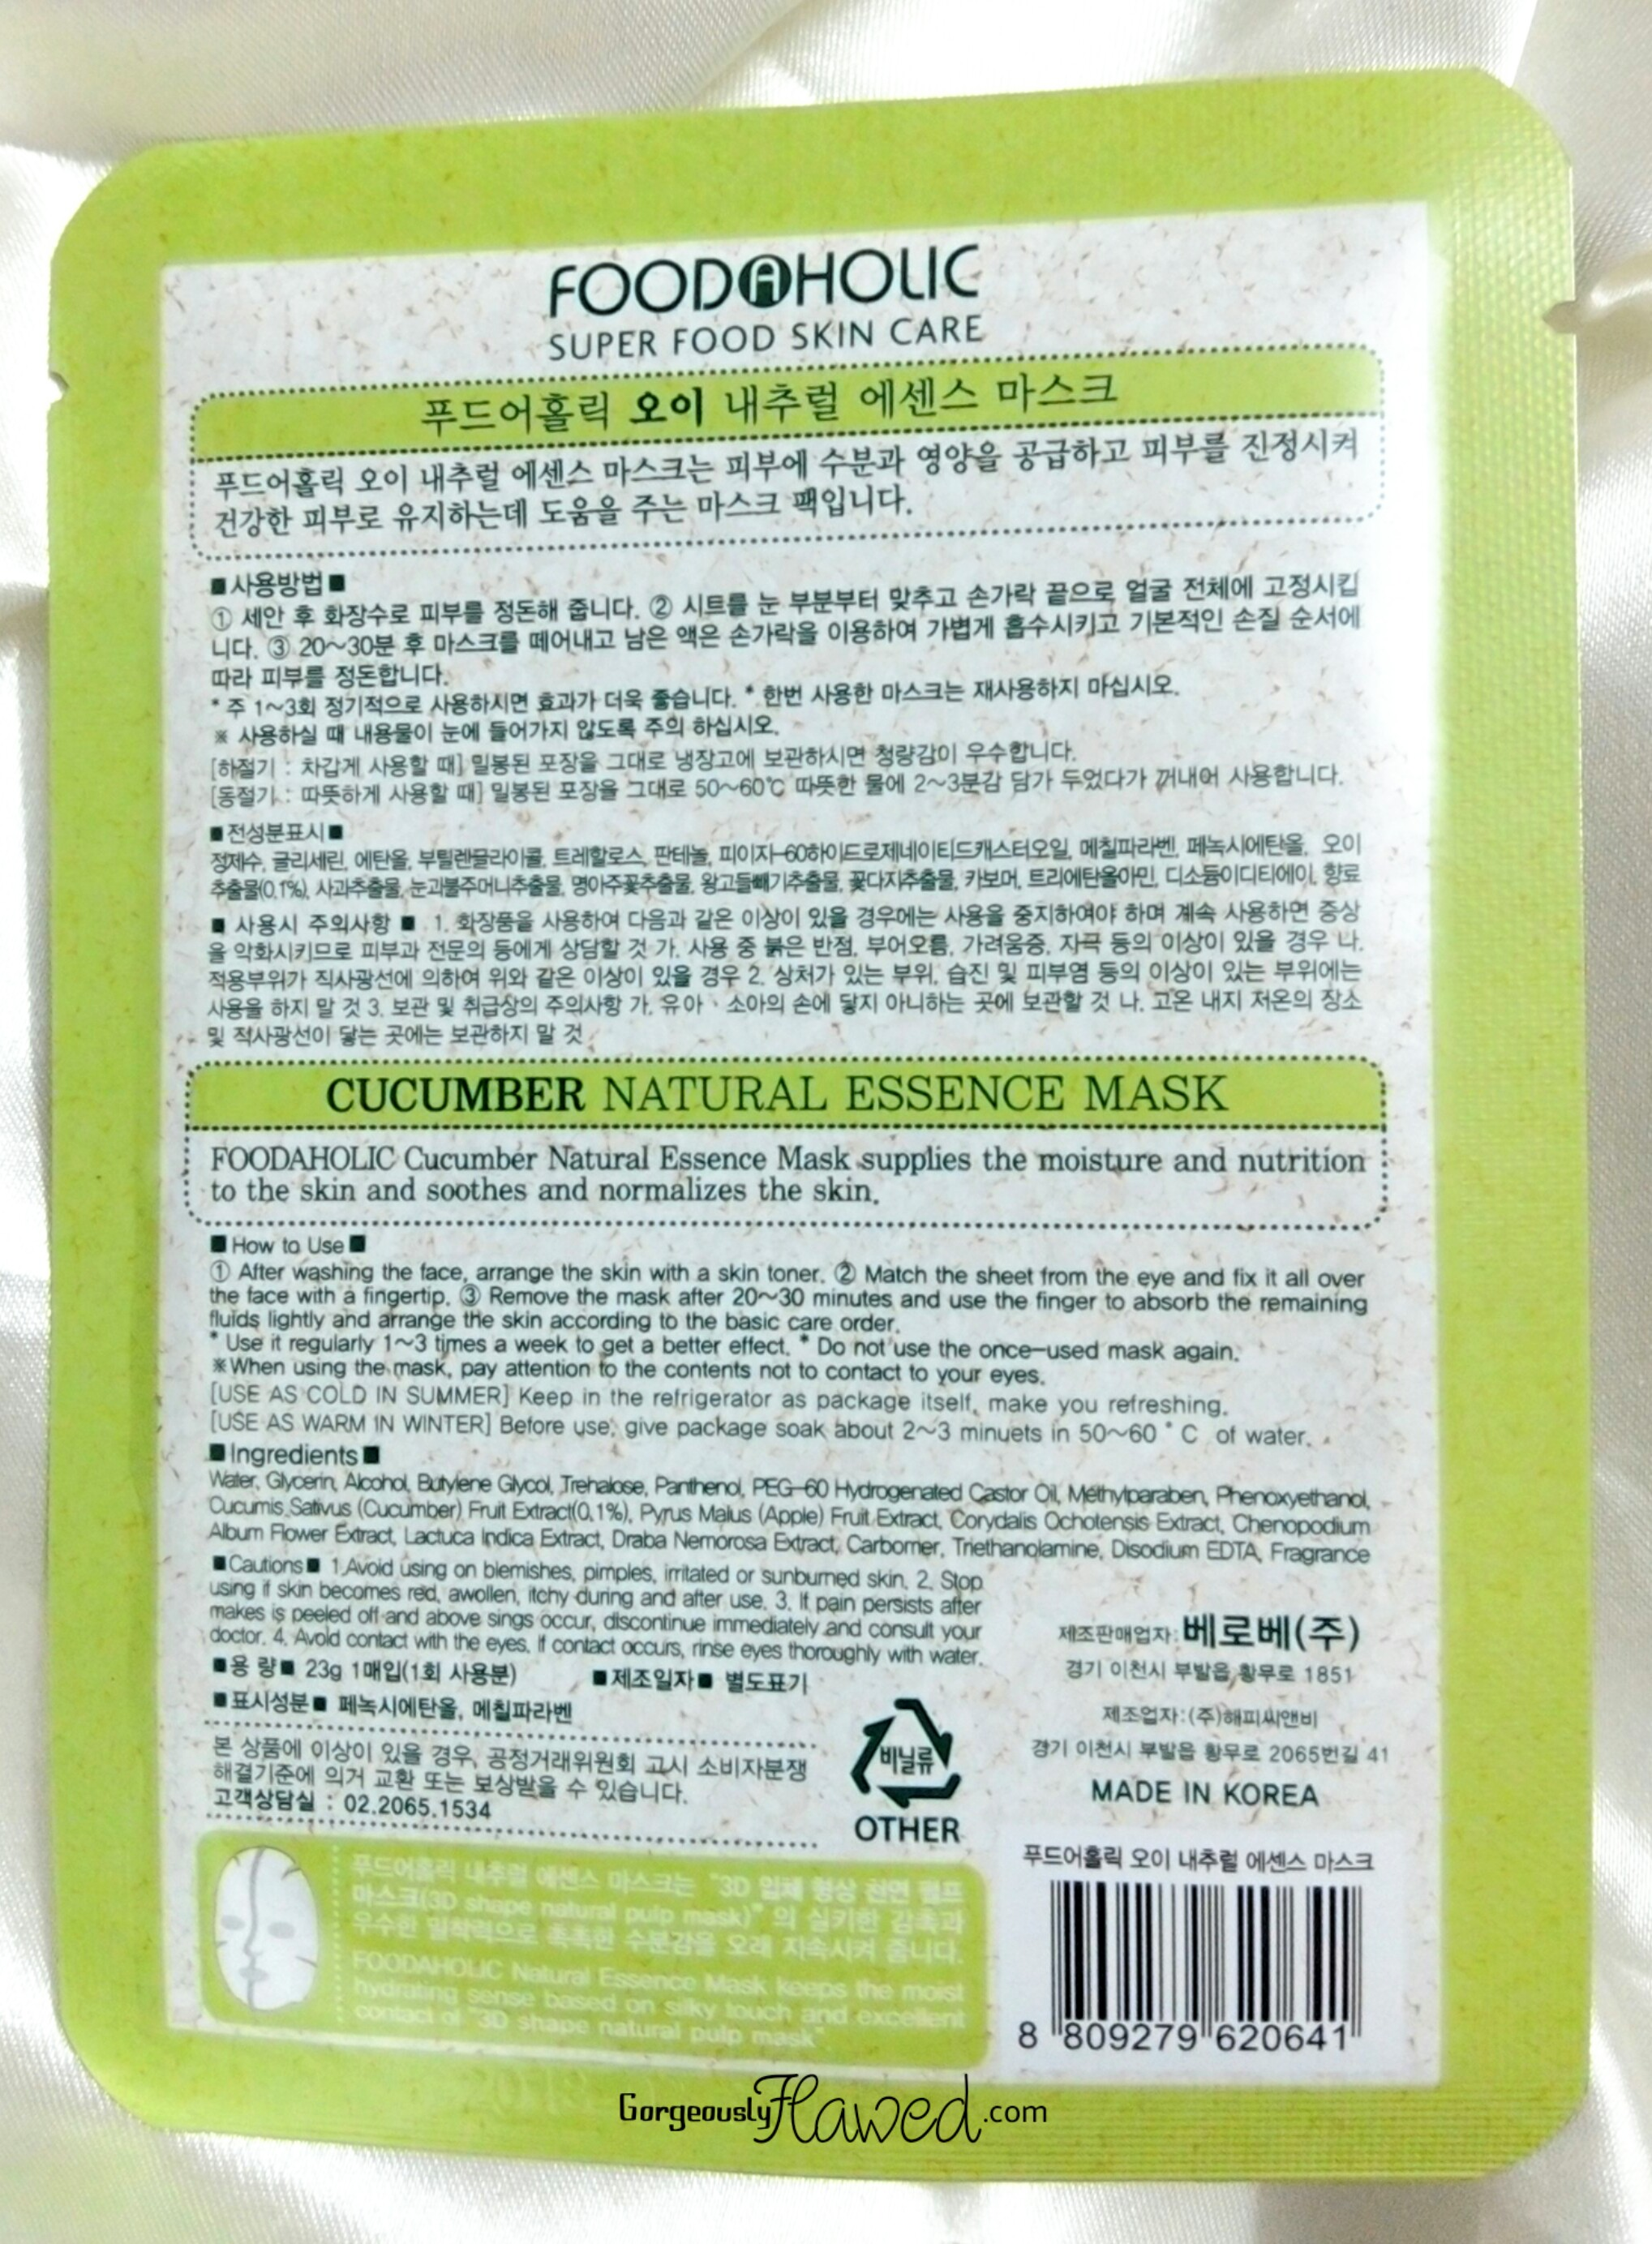 Skin18.com Foodaholic 3D Cucumber Natural Essence Mask Information